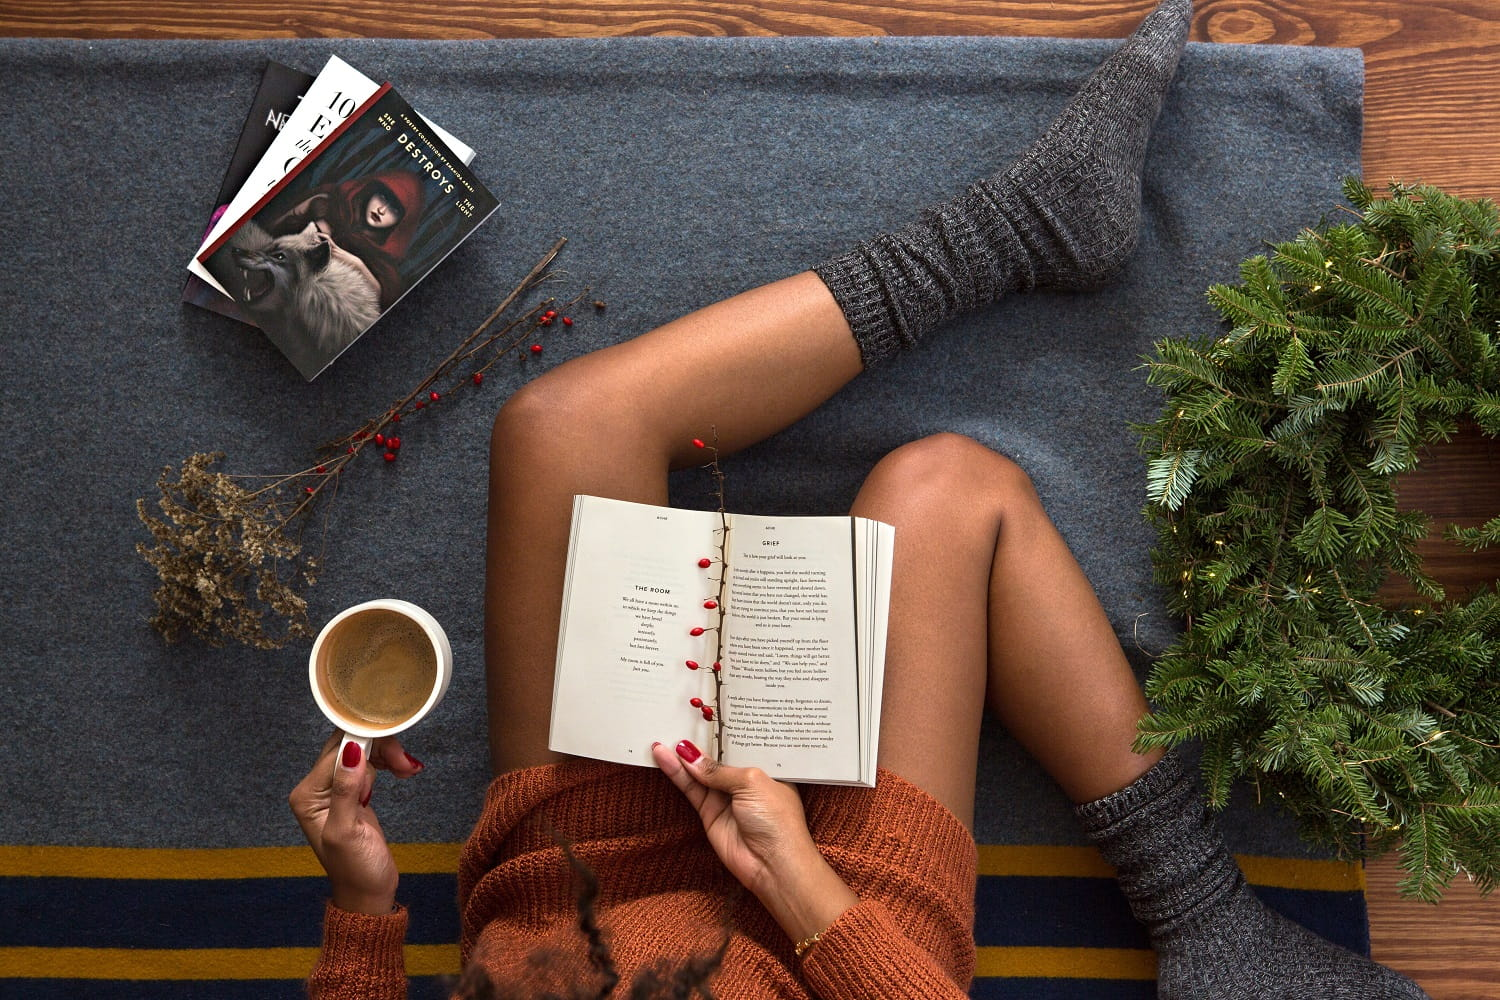 Overhead shot of women in socks reading book with coffee and festive decor